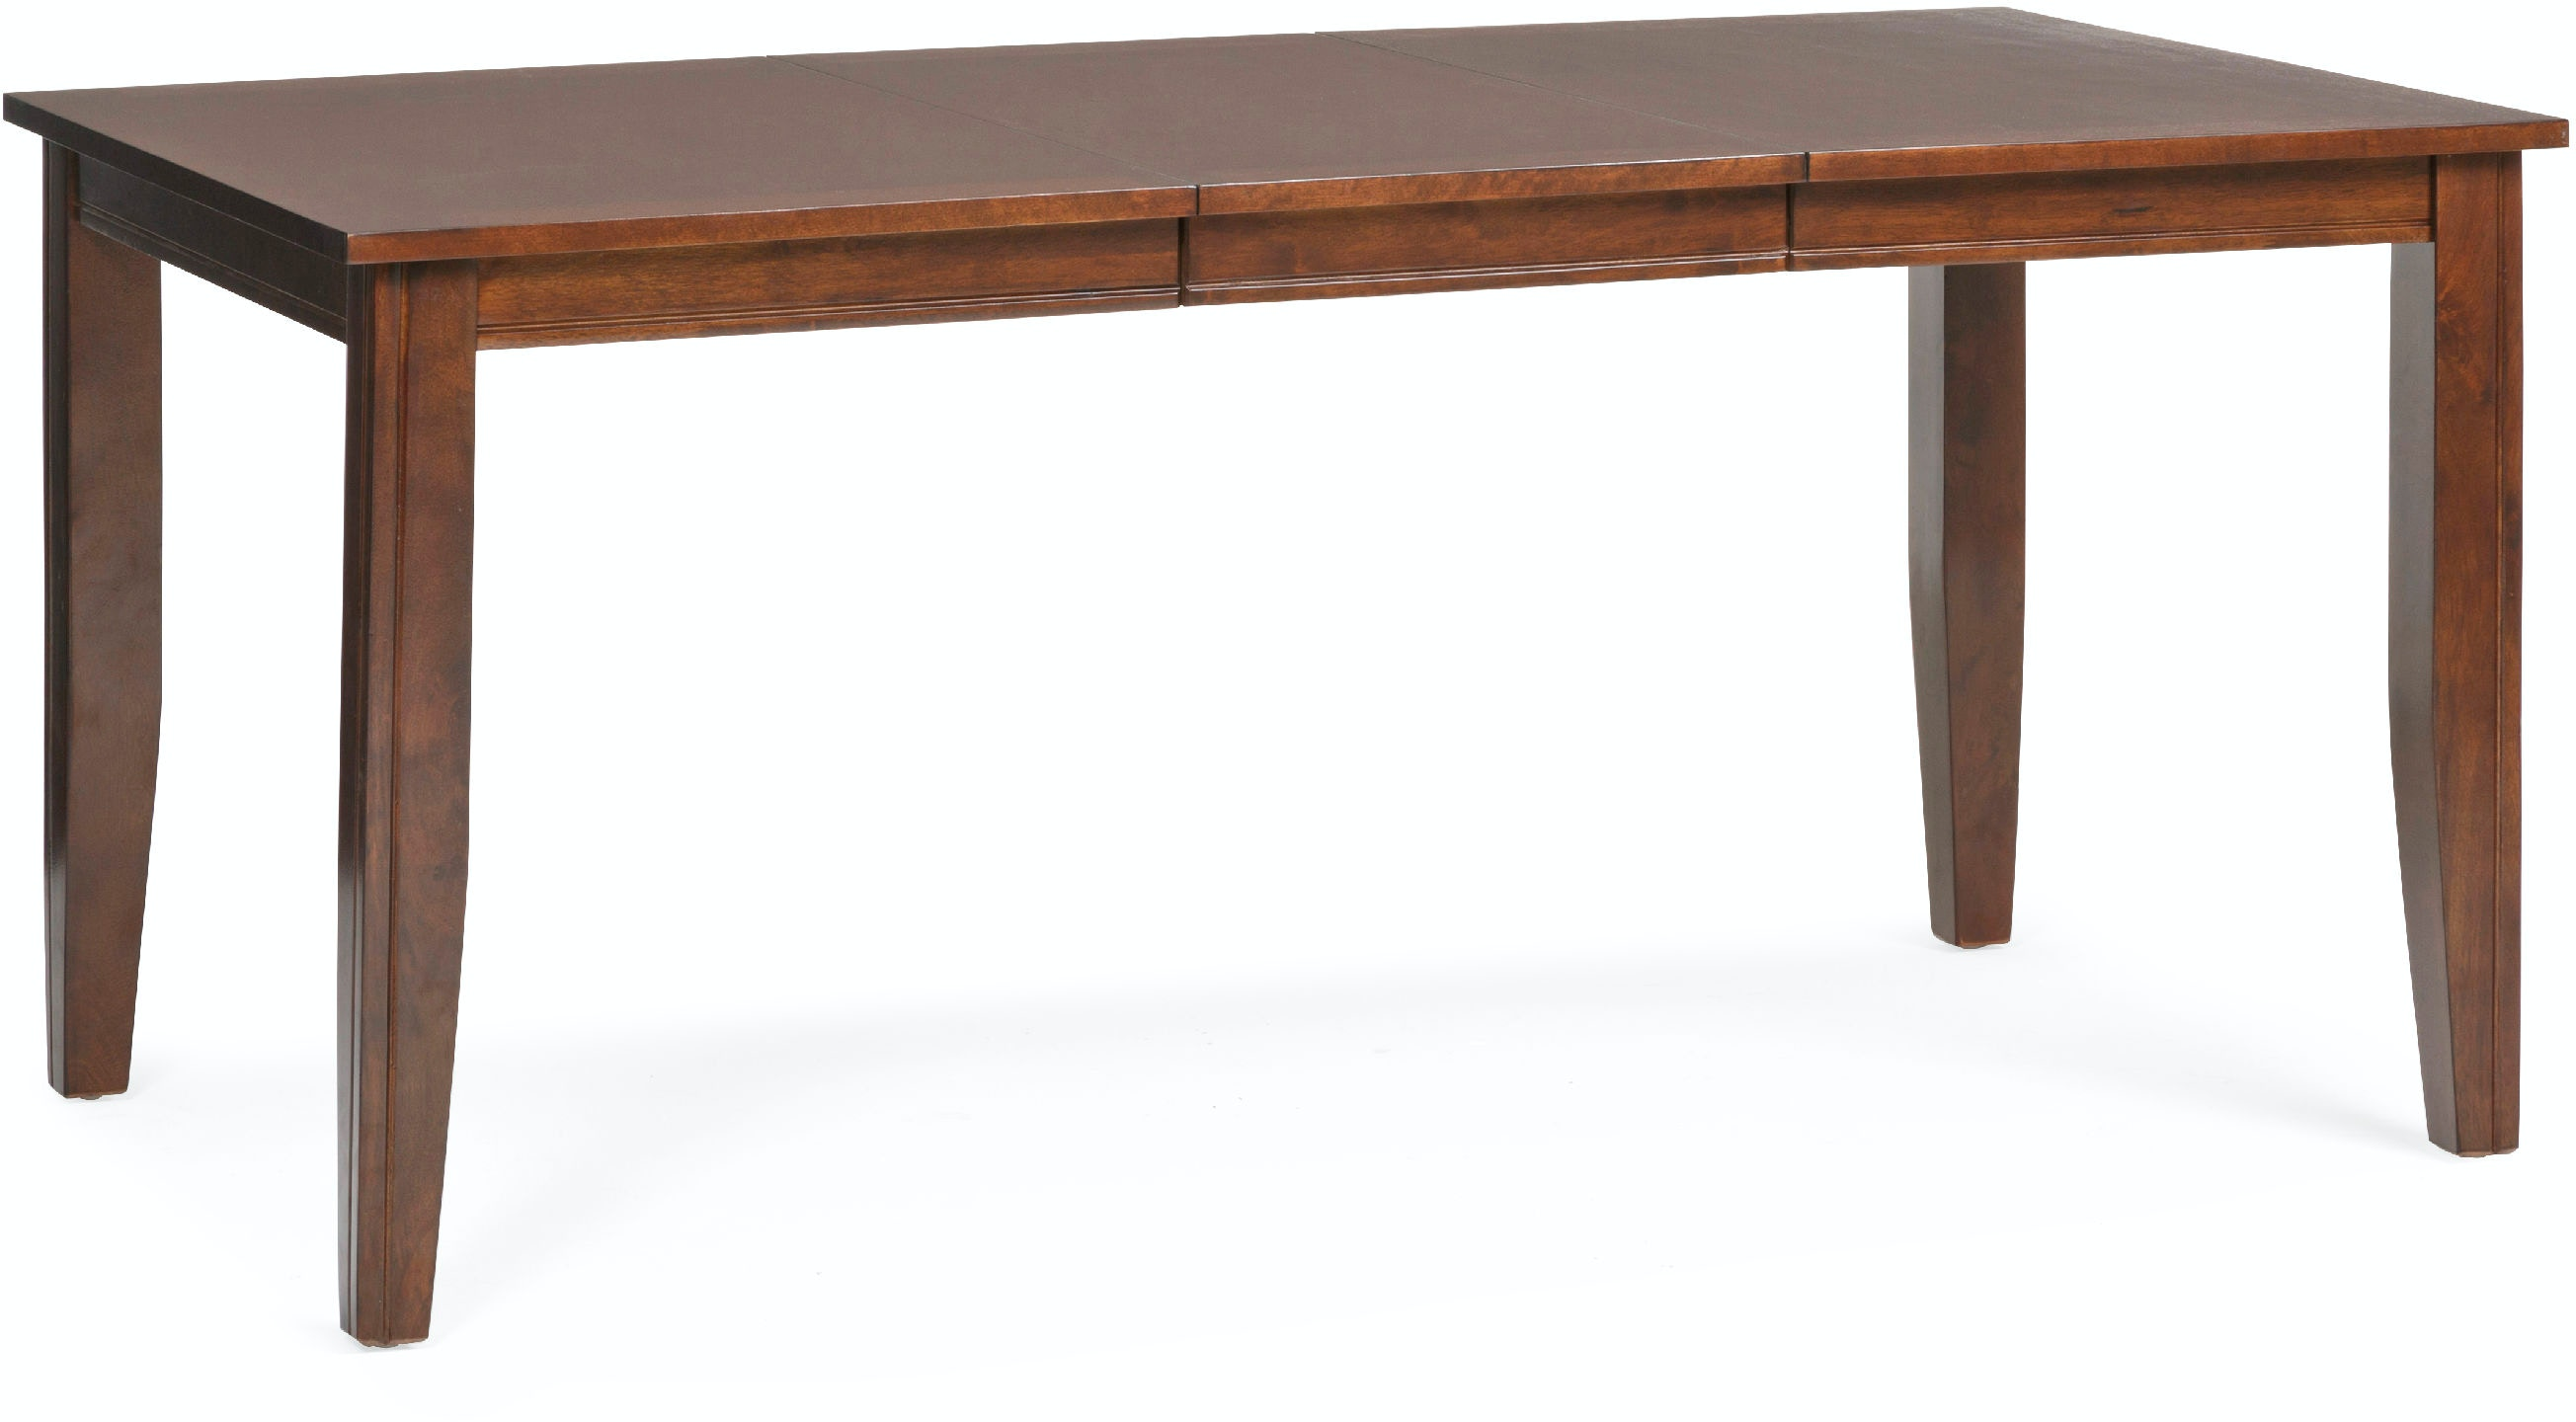 Dining Room Madera Rectangle Dining Table Espresso Finish